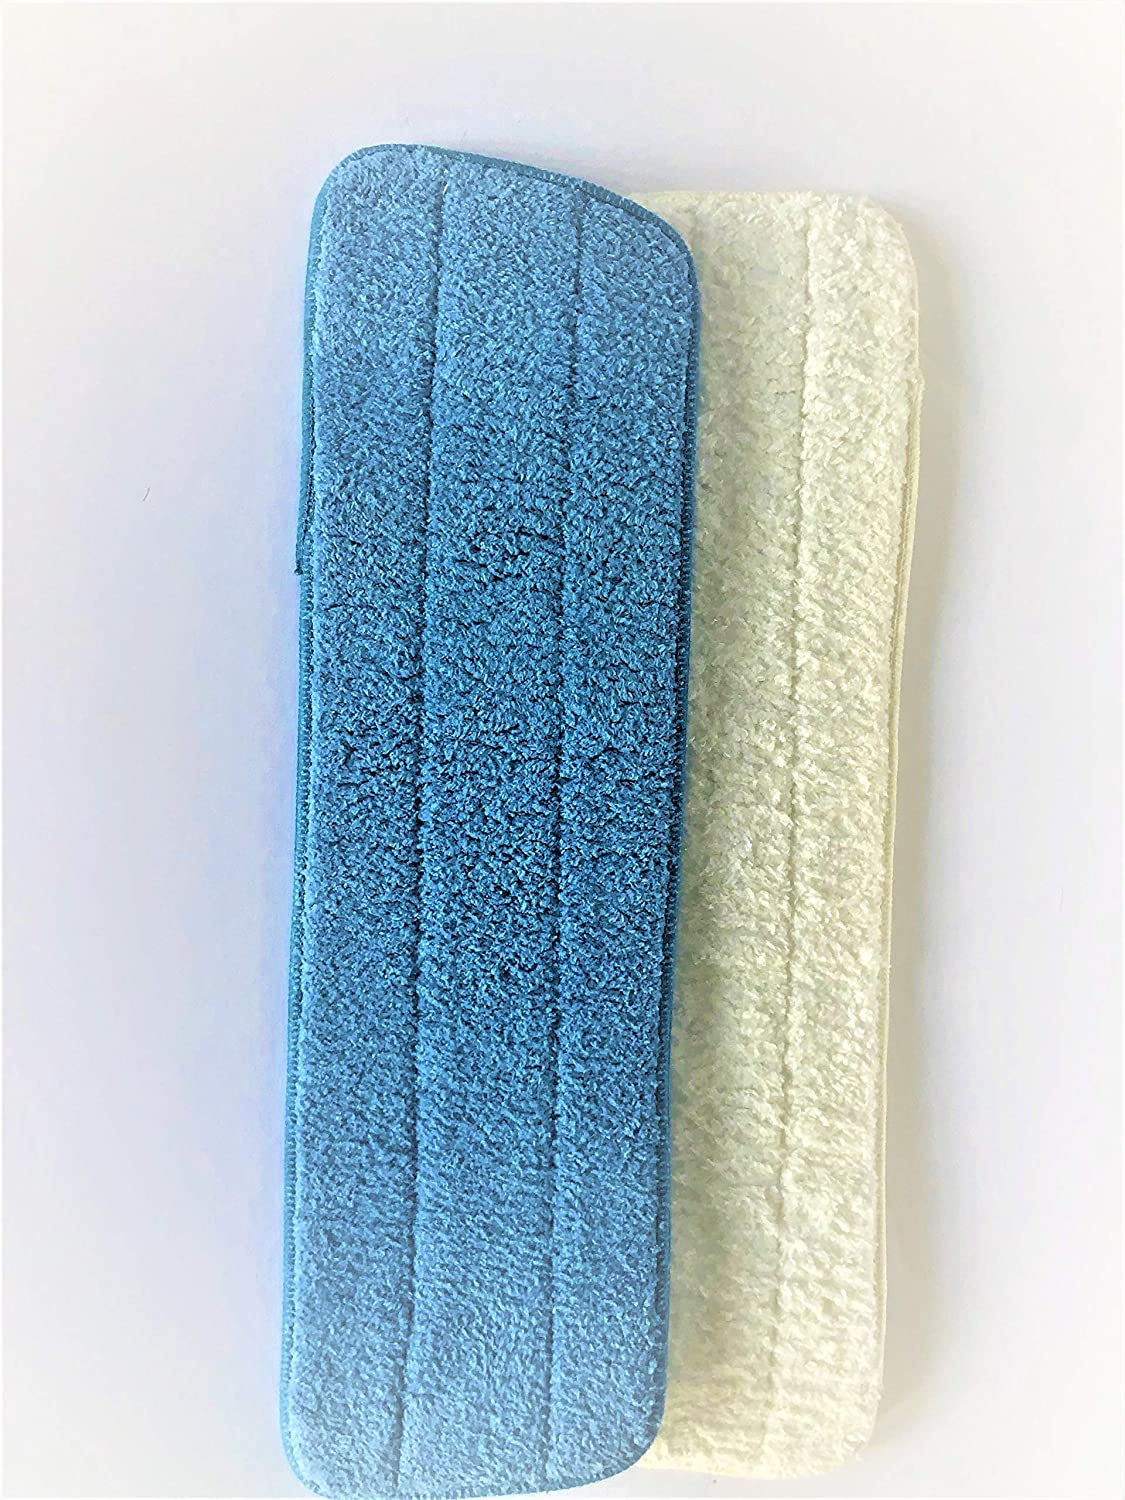 SPS Microfiber Cleaning Pad Replacement Mop Heads Floor Dust Spray